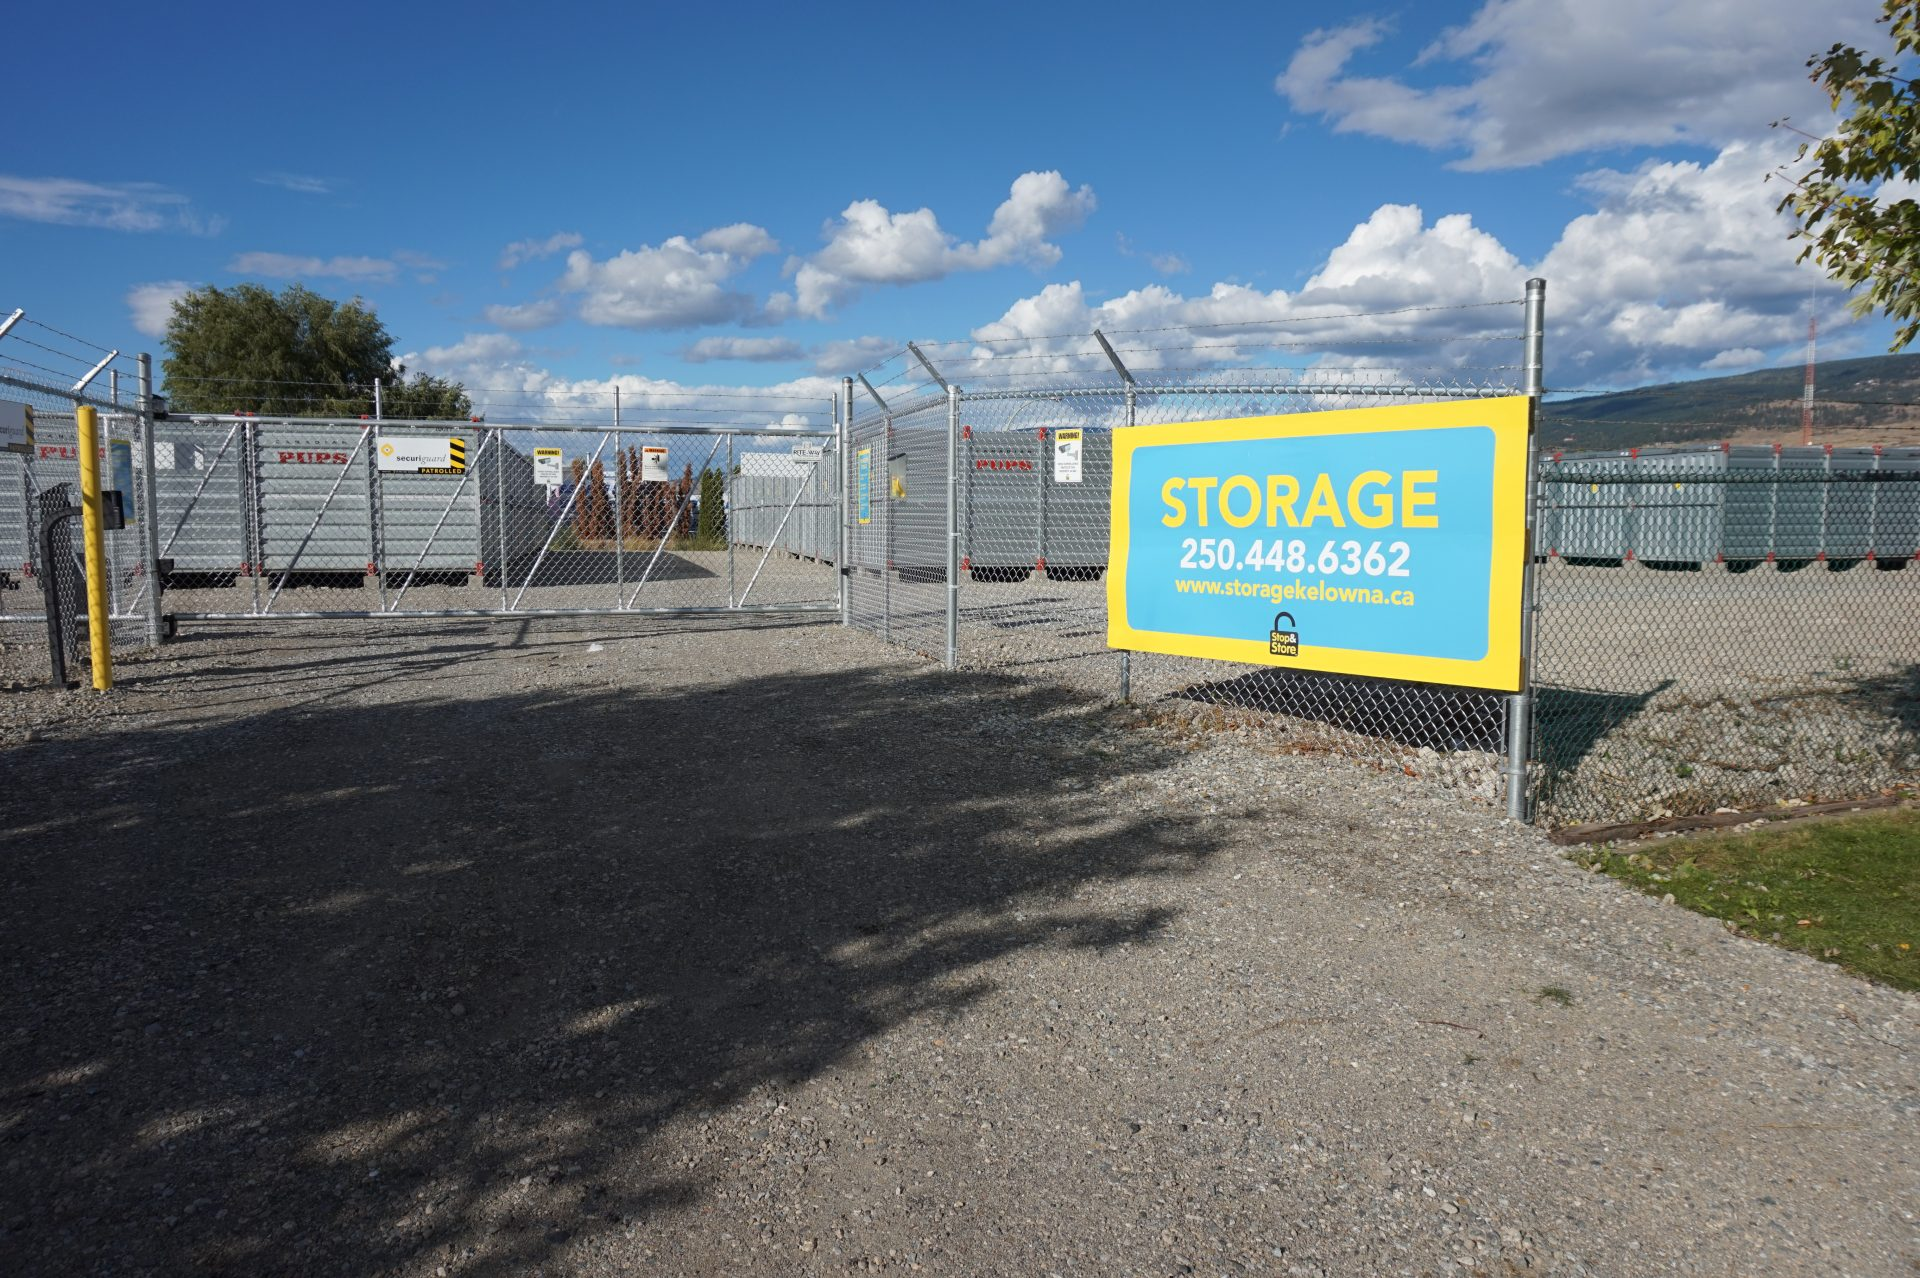 storage kelowna, stop and store, entrance